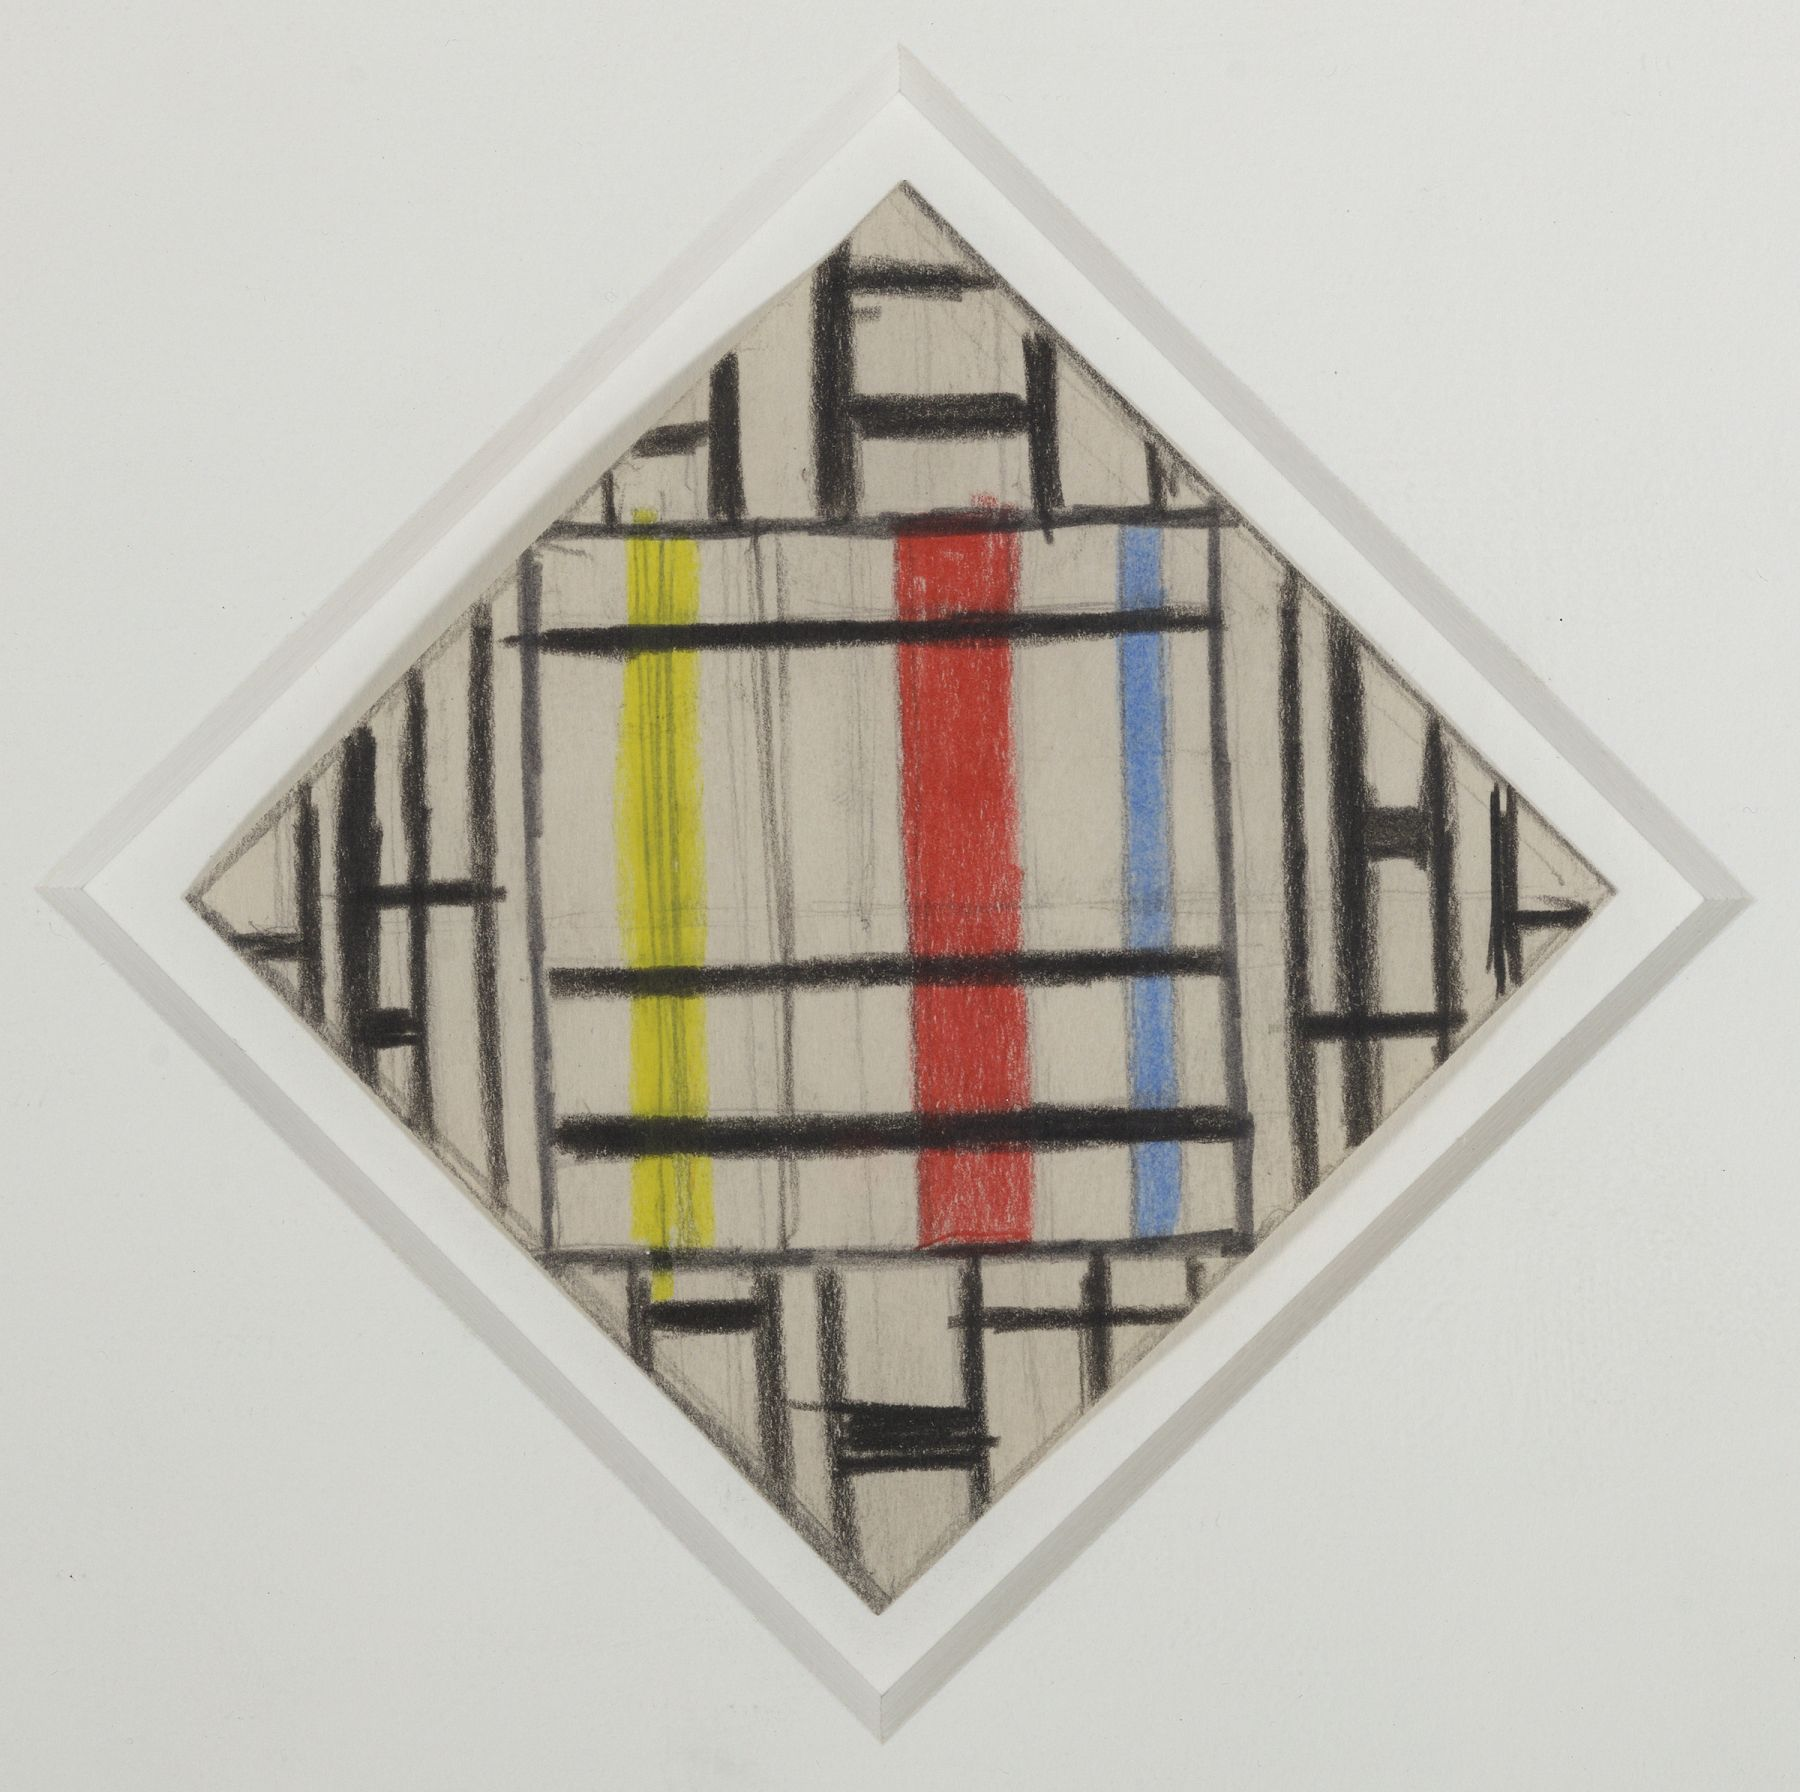 Burgoyne Diller, Third Theme, Pencil and crayon on paper, 3 1/2 x 3 1/2 inches, Sketch with vertical and horizontal black, red, blue and yellow lines.  Burgoyne Diller was a modernist artist who worked in various mediums to create geometric abstractions.